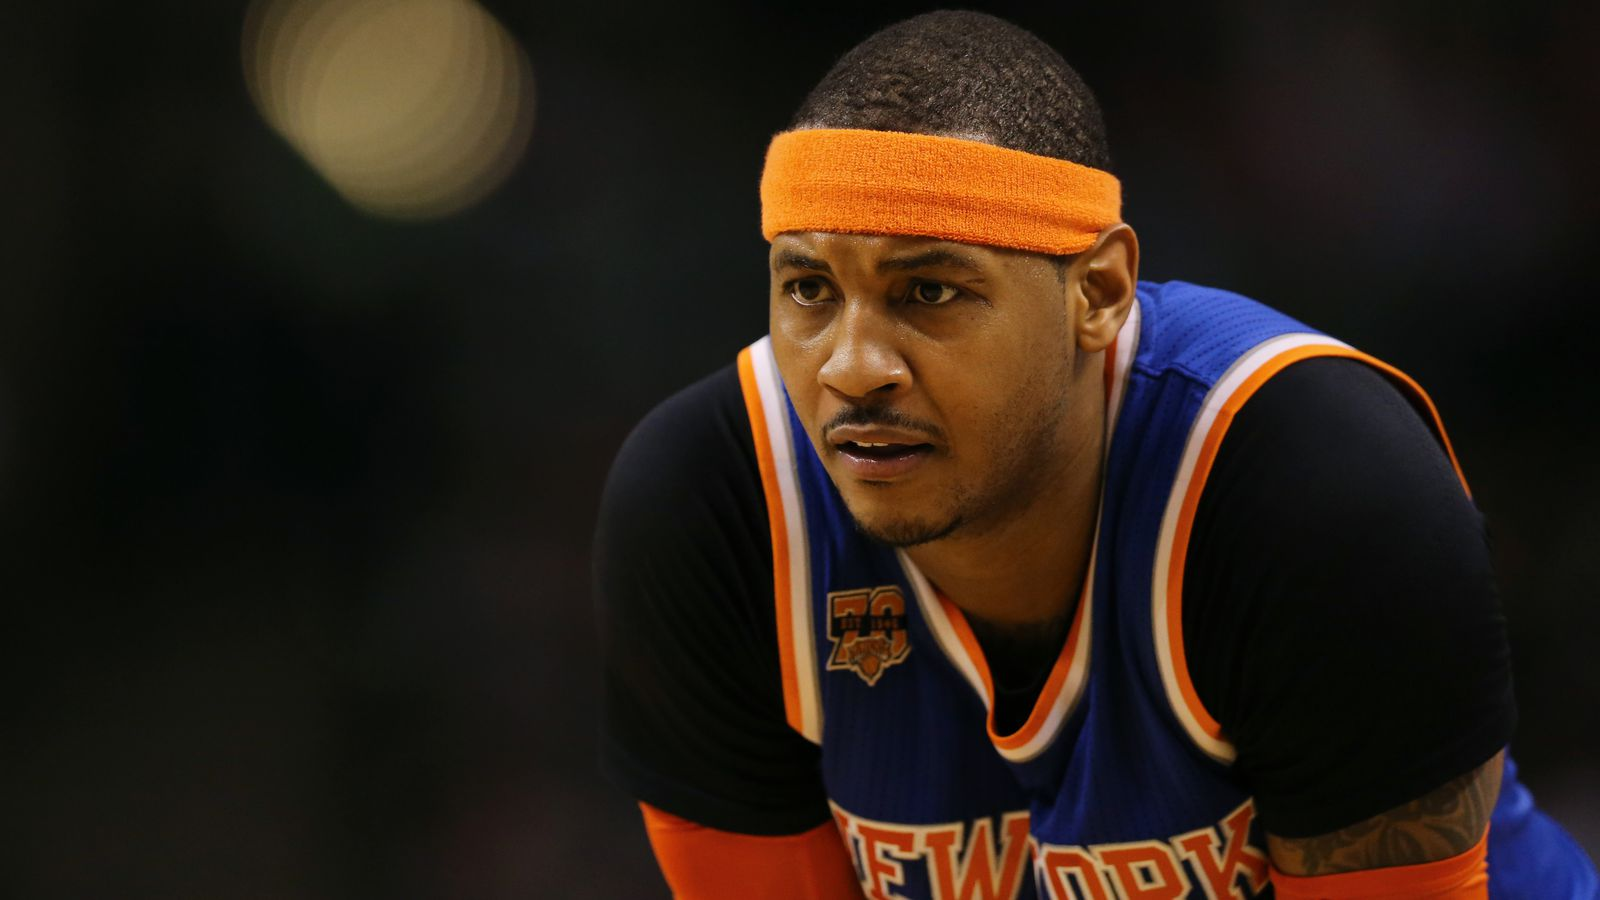 Carmelo Anthony trade rumors are being initiated by the Knicks, per report